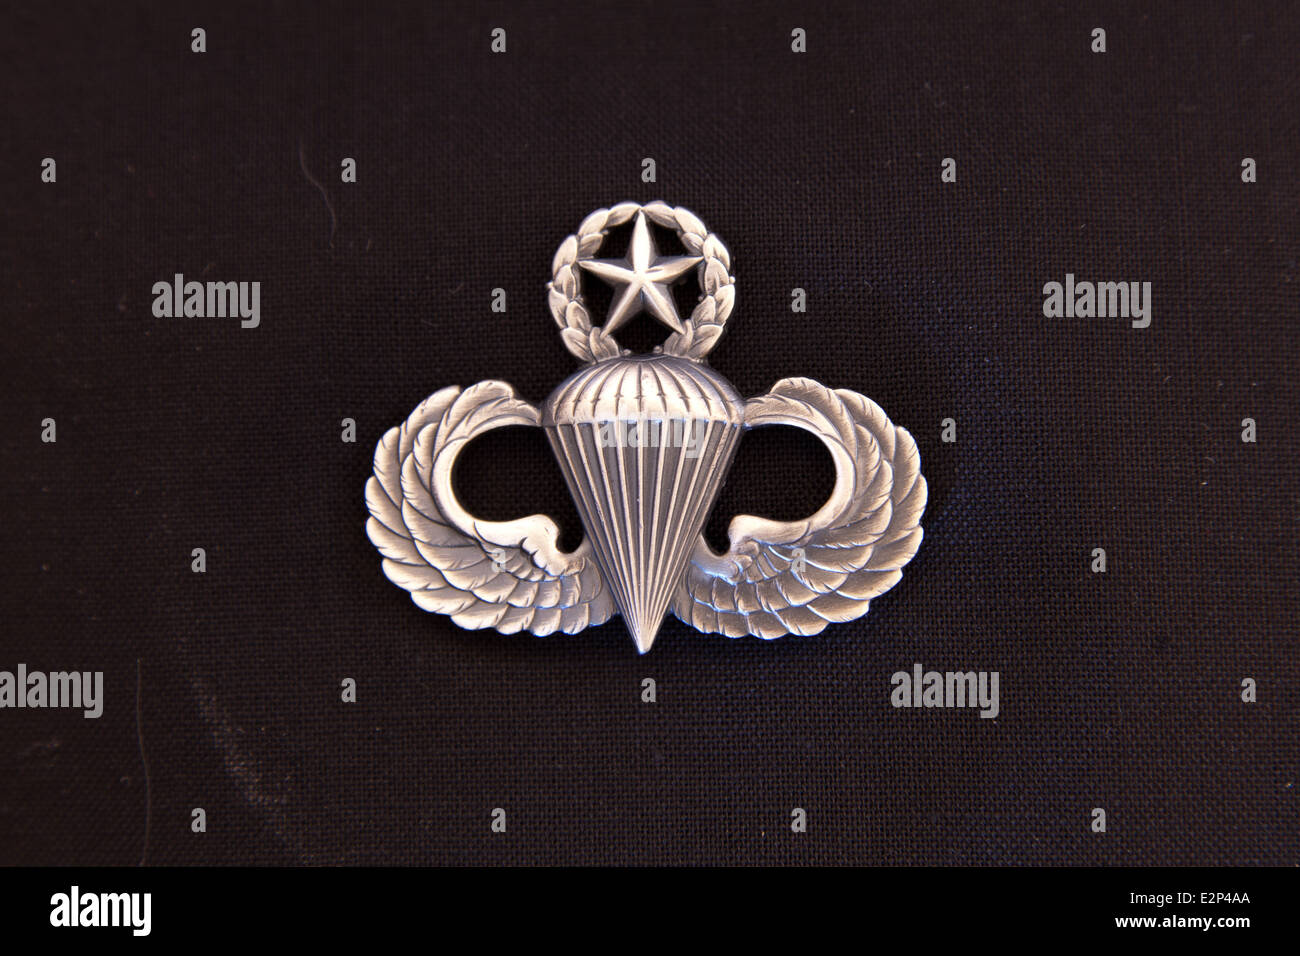 Master Airborne wings - Stock Image